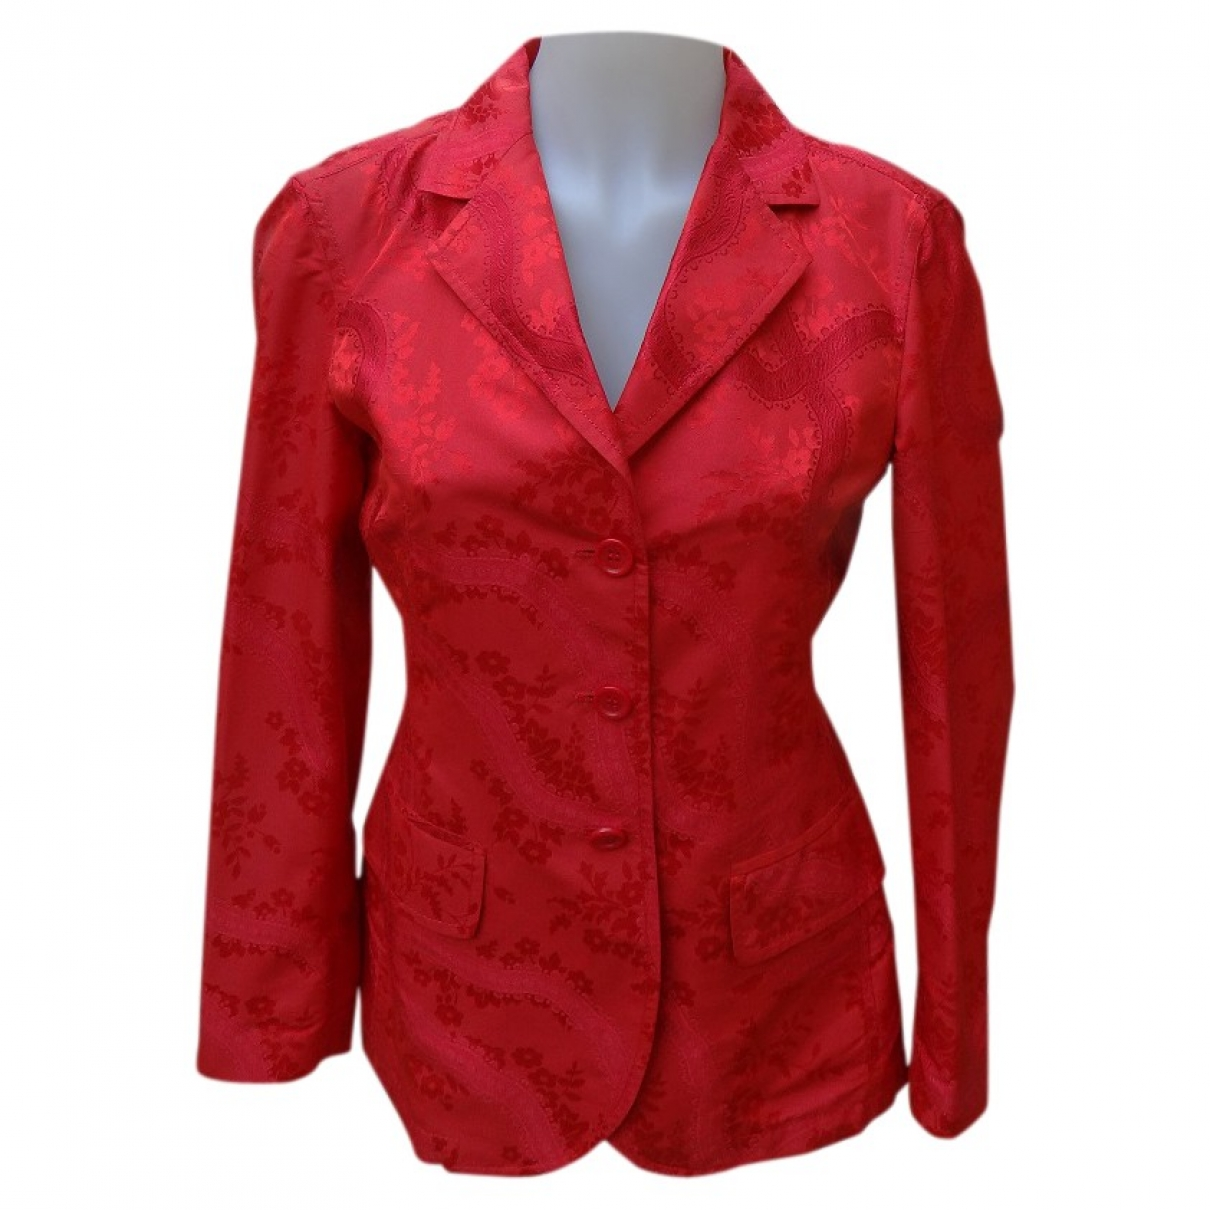 Prada \N Red Silk jacket for Women 38 FR